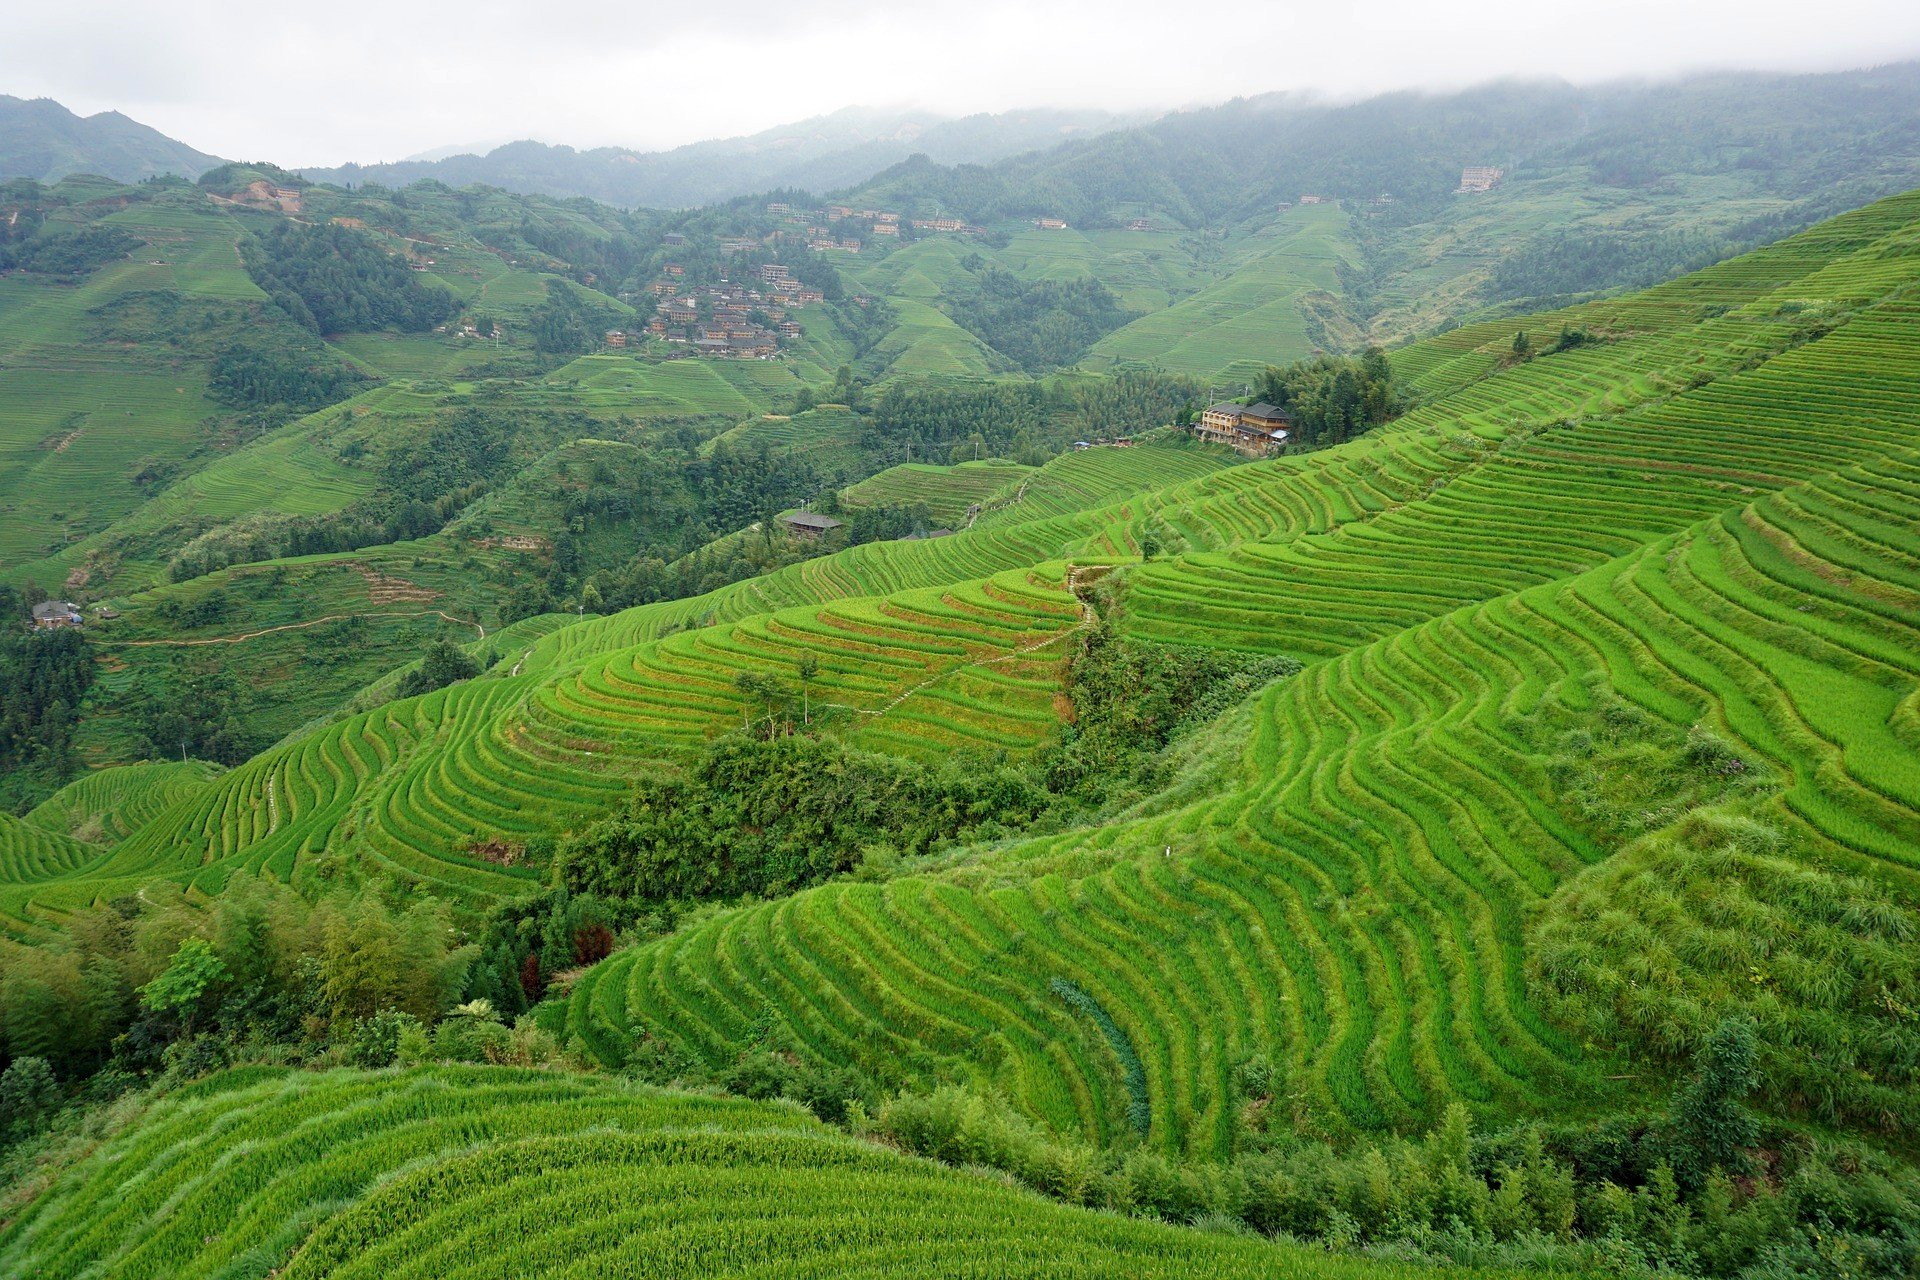 Longsheng Rice Terraces in the Guangxi Autonomous Region